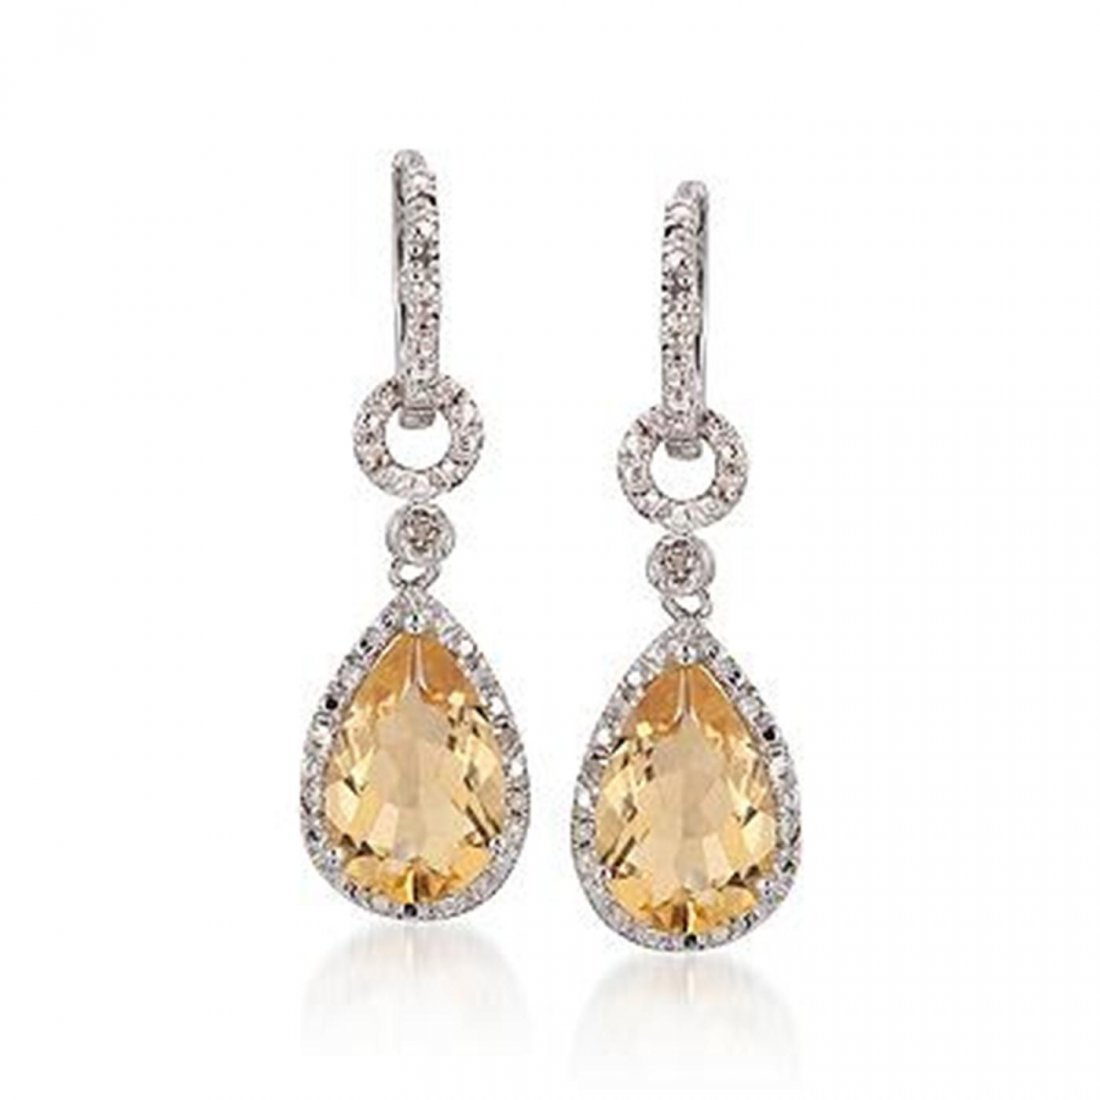 6.00 ct. t.w. Citrine and Diamond Drop Earrings in Ster